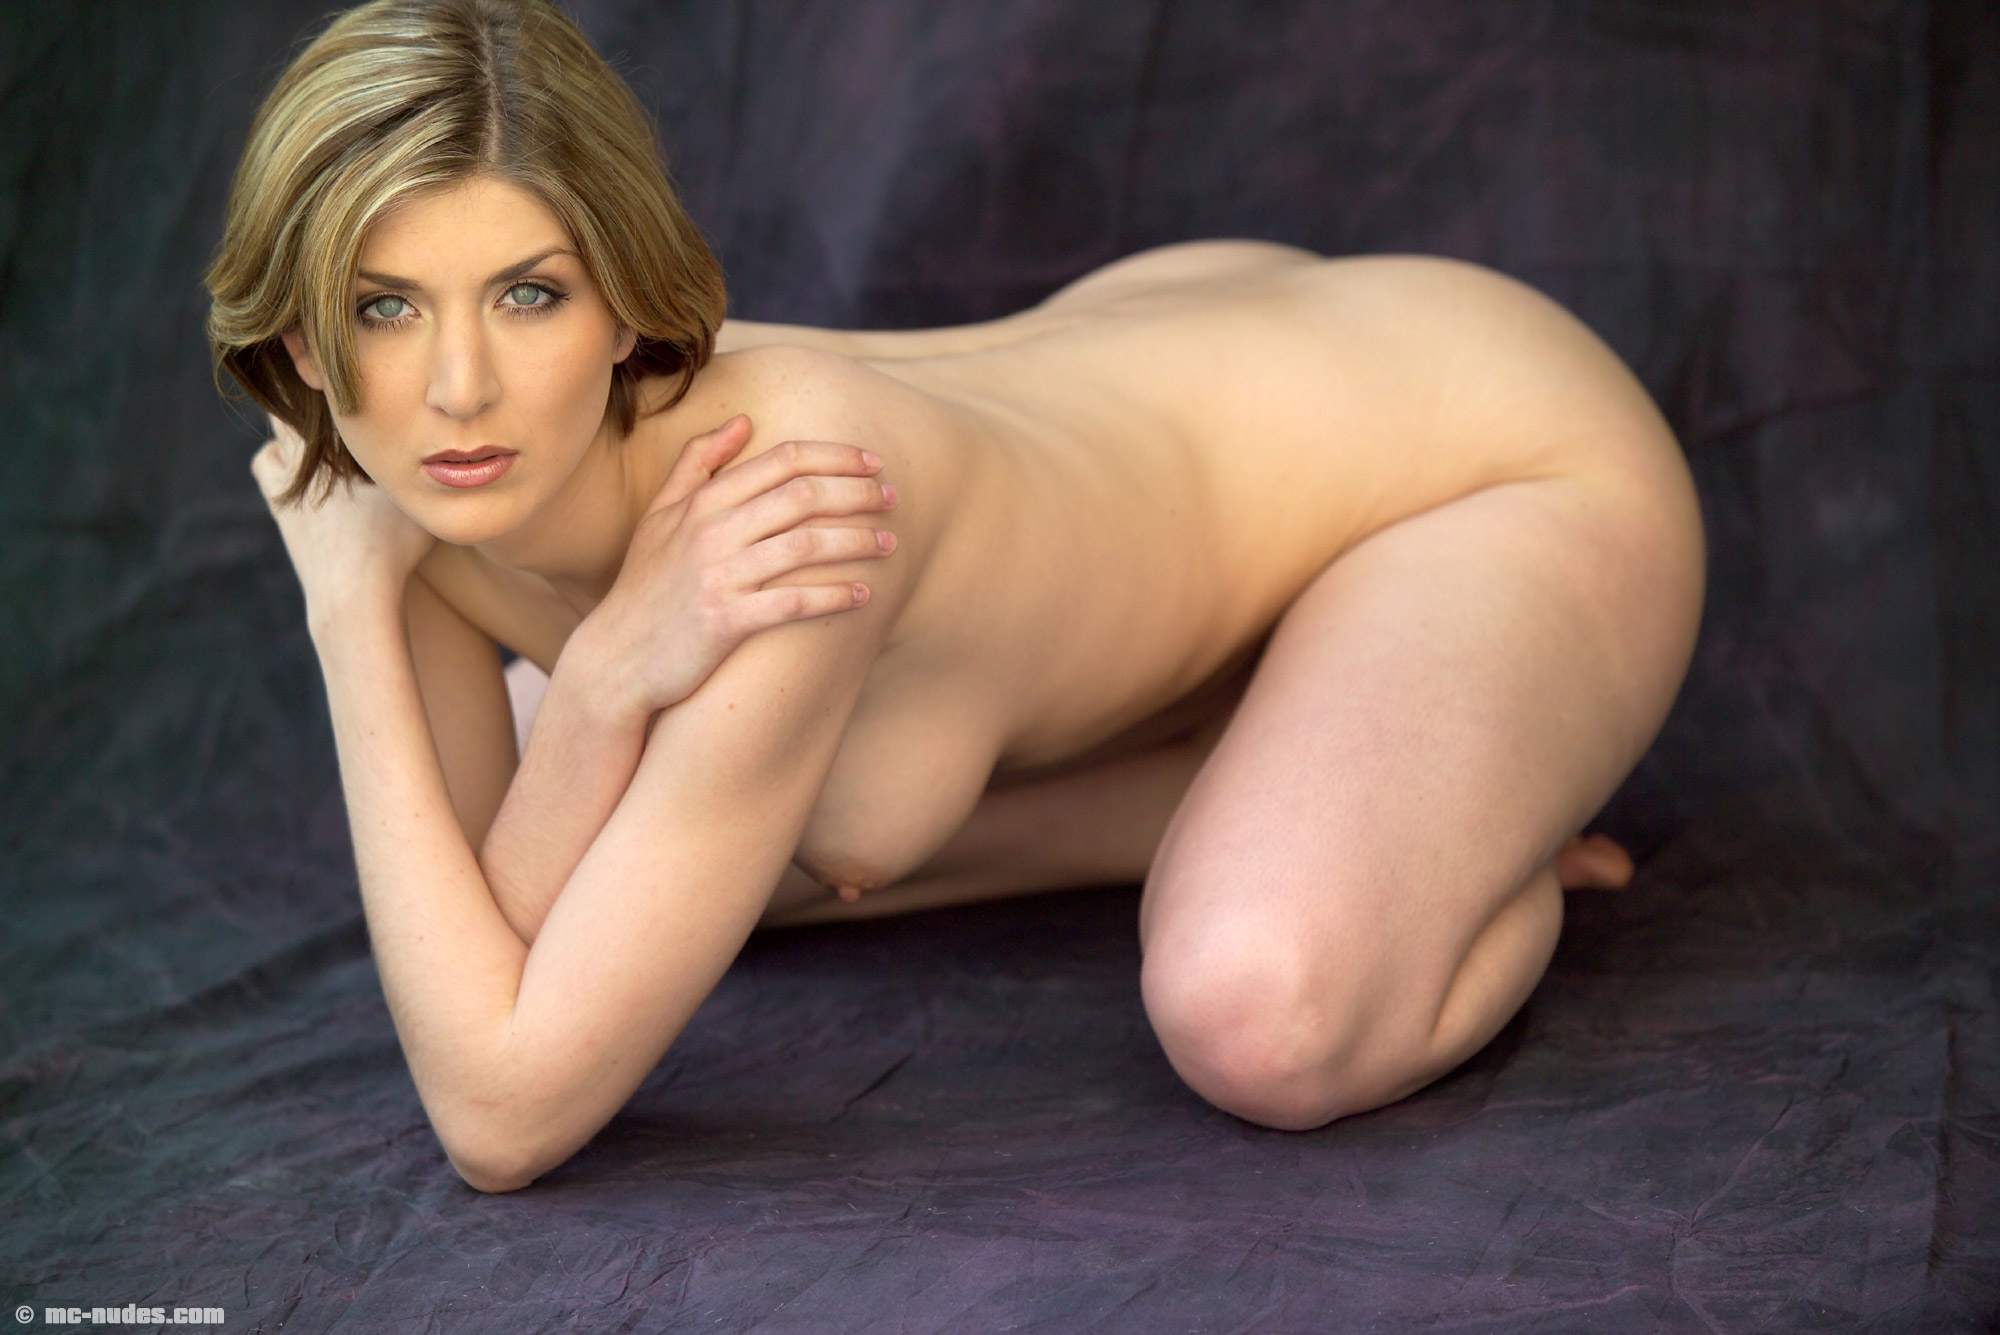 Free only celebs nudes